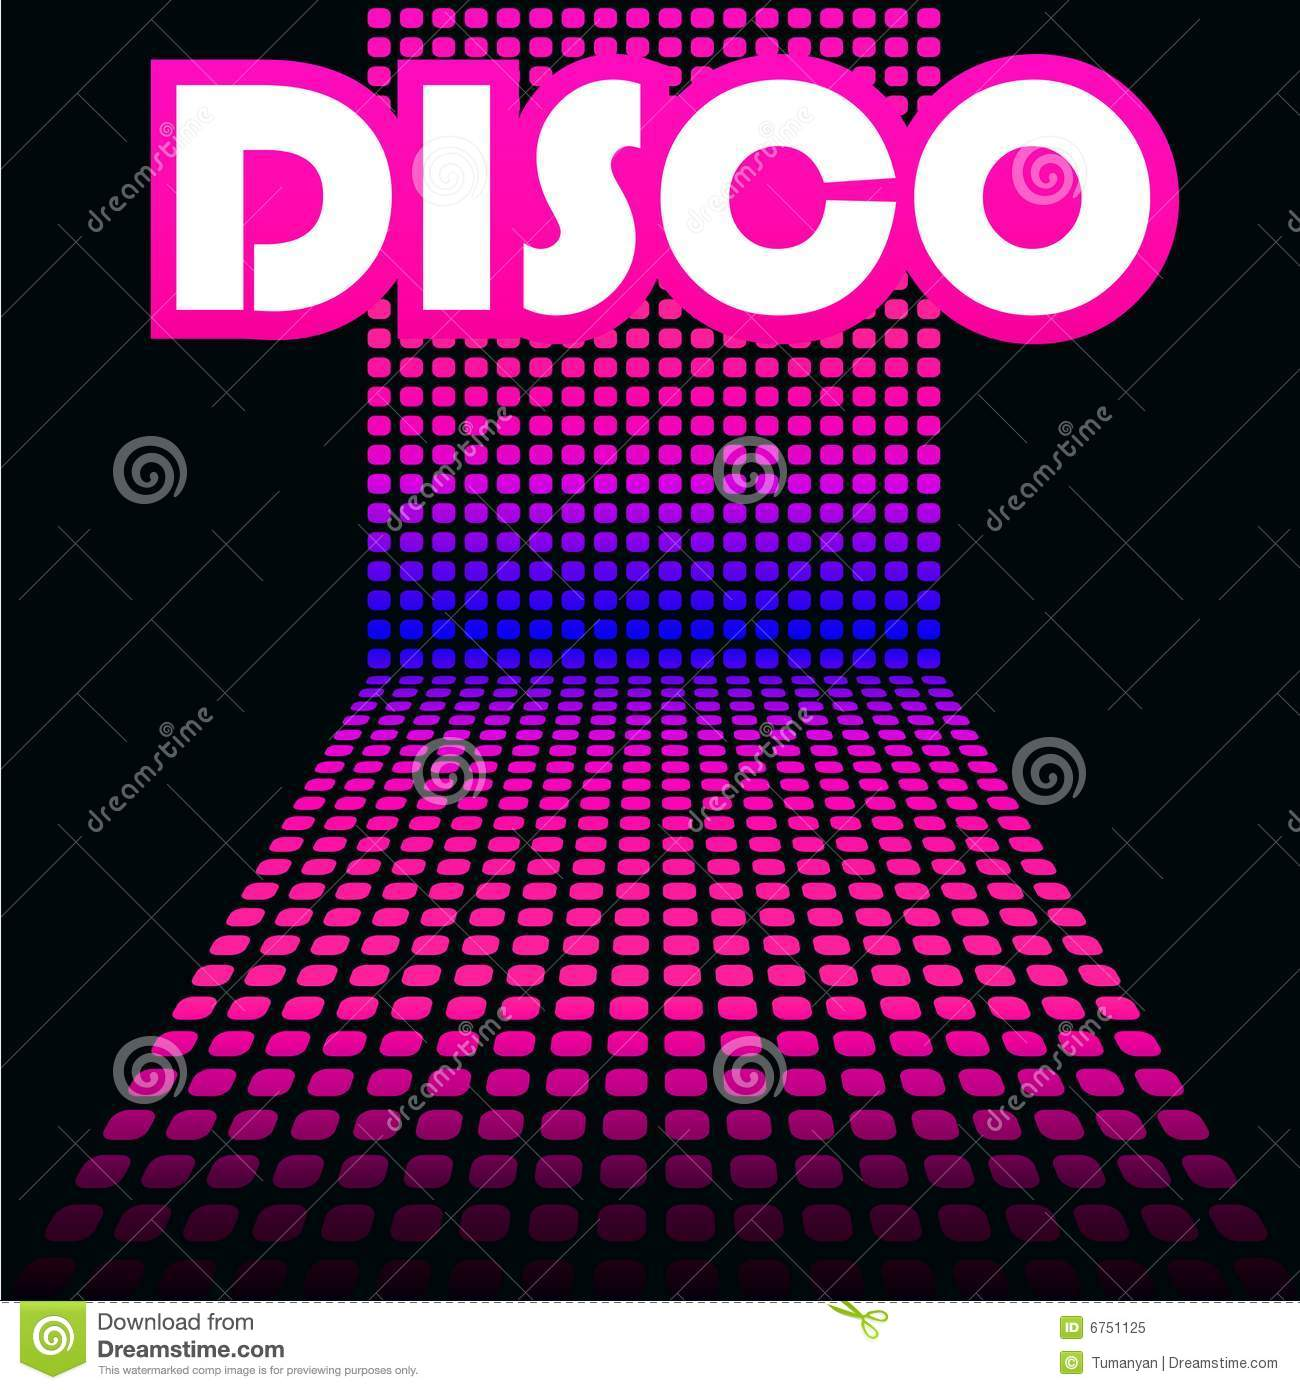 Disco Cover Template Royalty Free Stock Photo Image 6751125